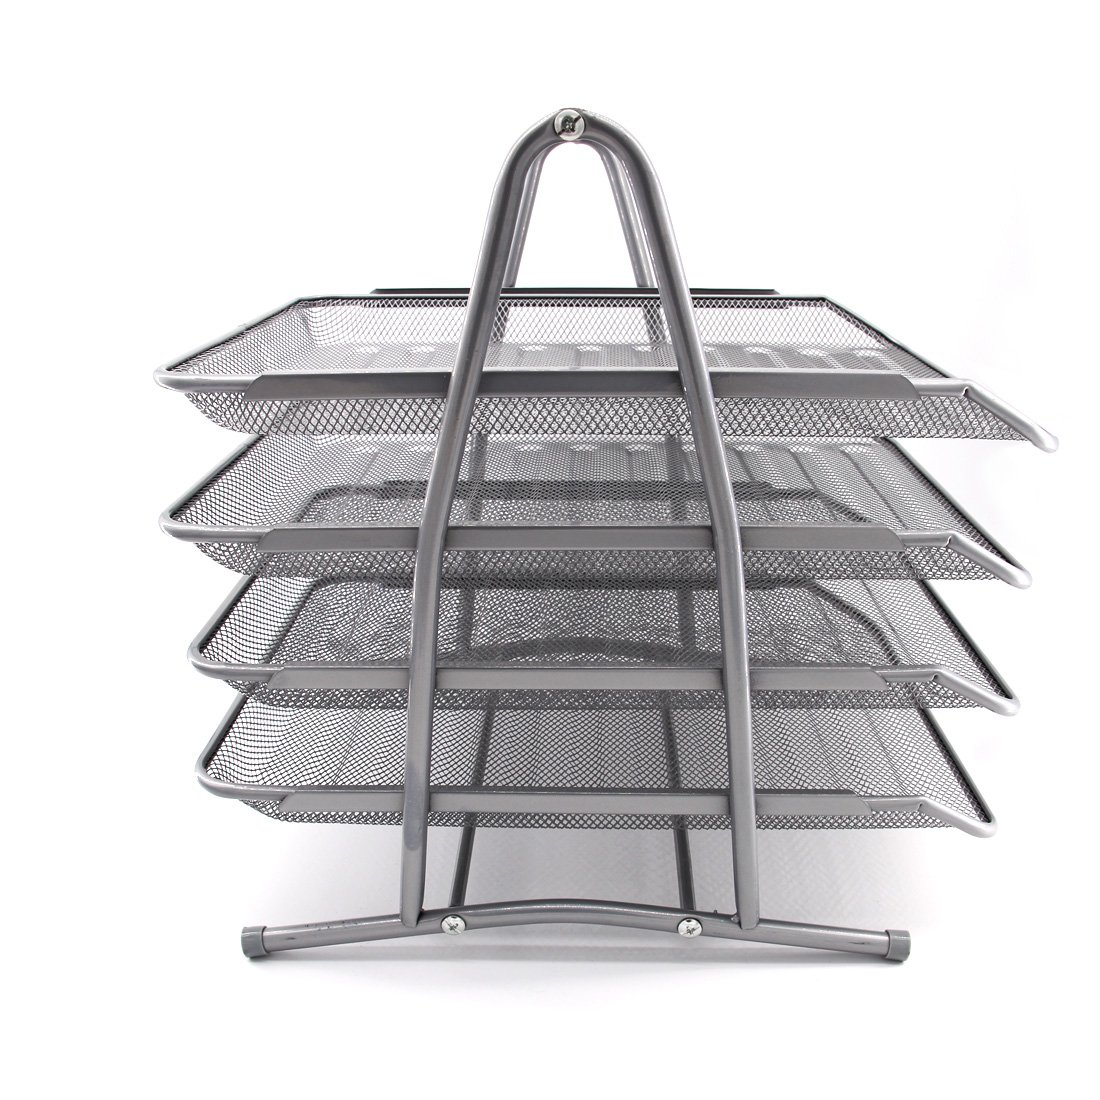 HAODE Fashion 4 Tiers Steel Mesh Document Tray, File Basket, Office Desk Organizer, Letter Tray Organizer, Desktop Document Paper File Organizer, Silver by HAODE Fashion (Image #7)